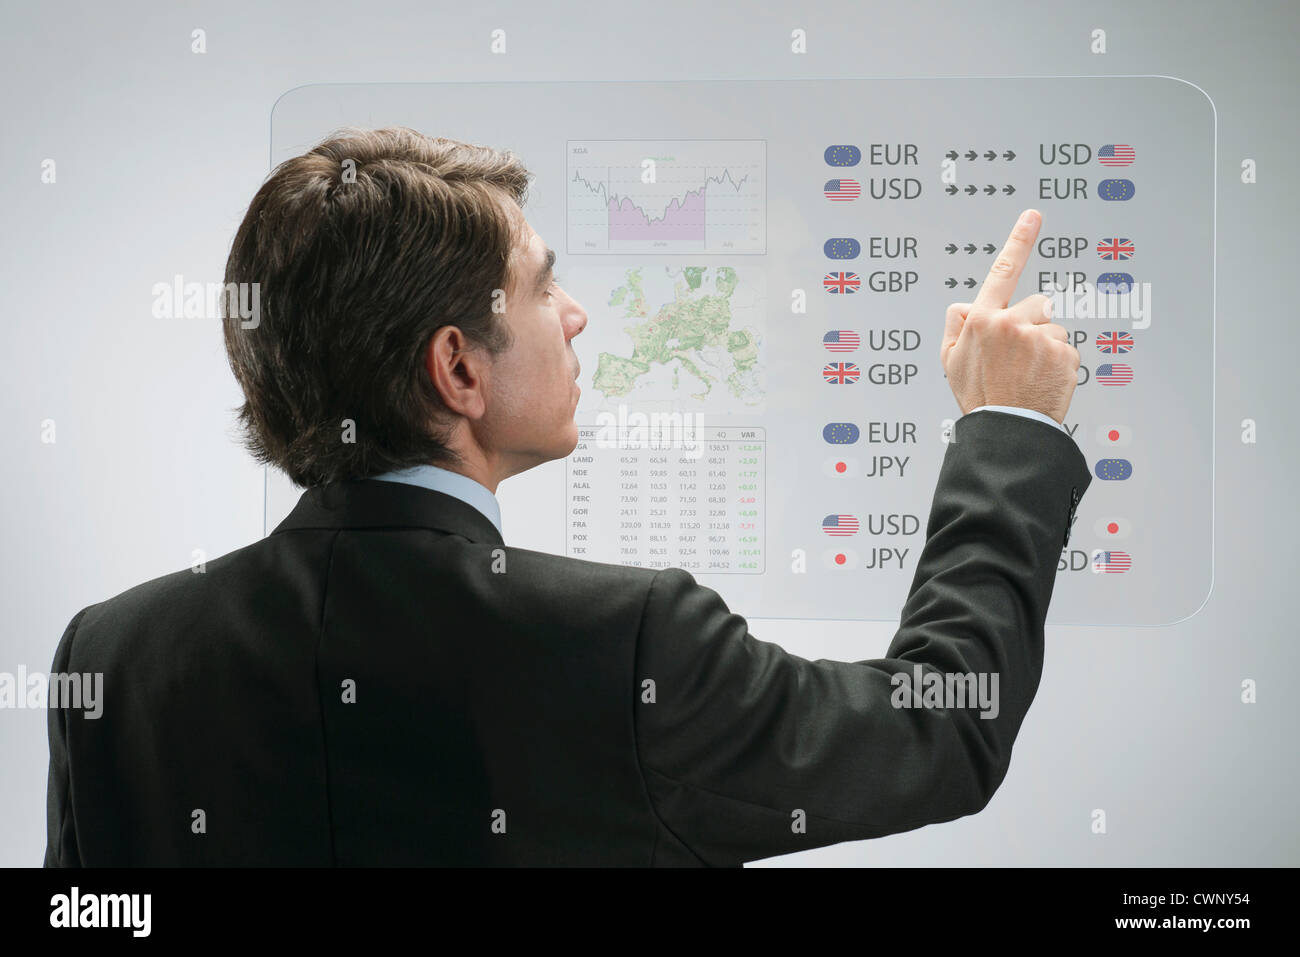 Businessman using advanced touch screen technology to view business data - Stock Image